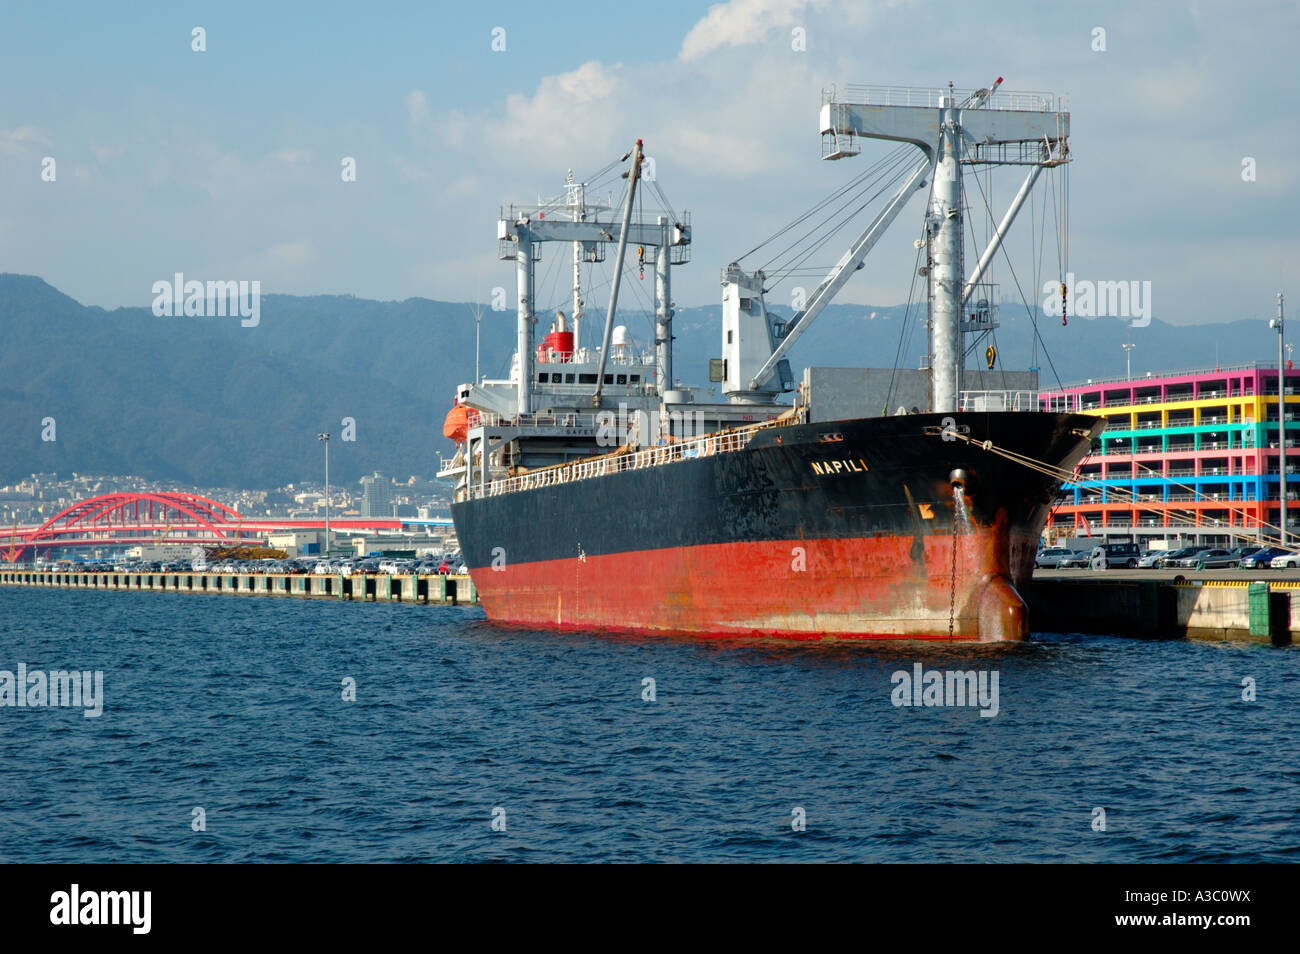 Cargo ship in the port of Kobe Japan - Stock Image